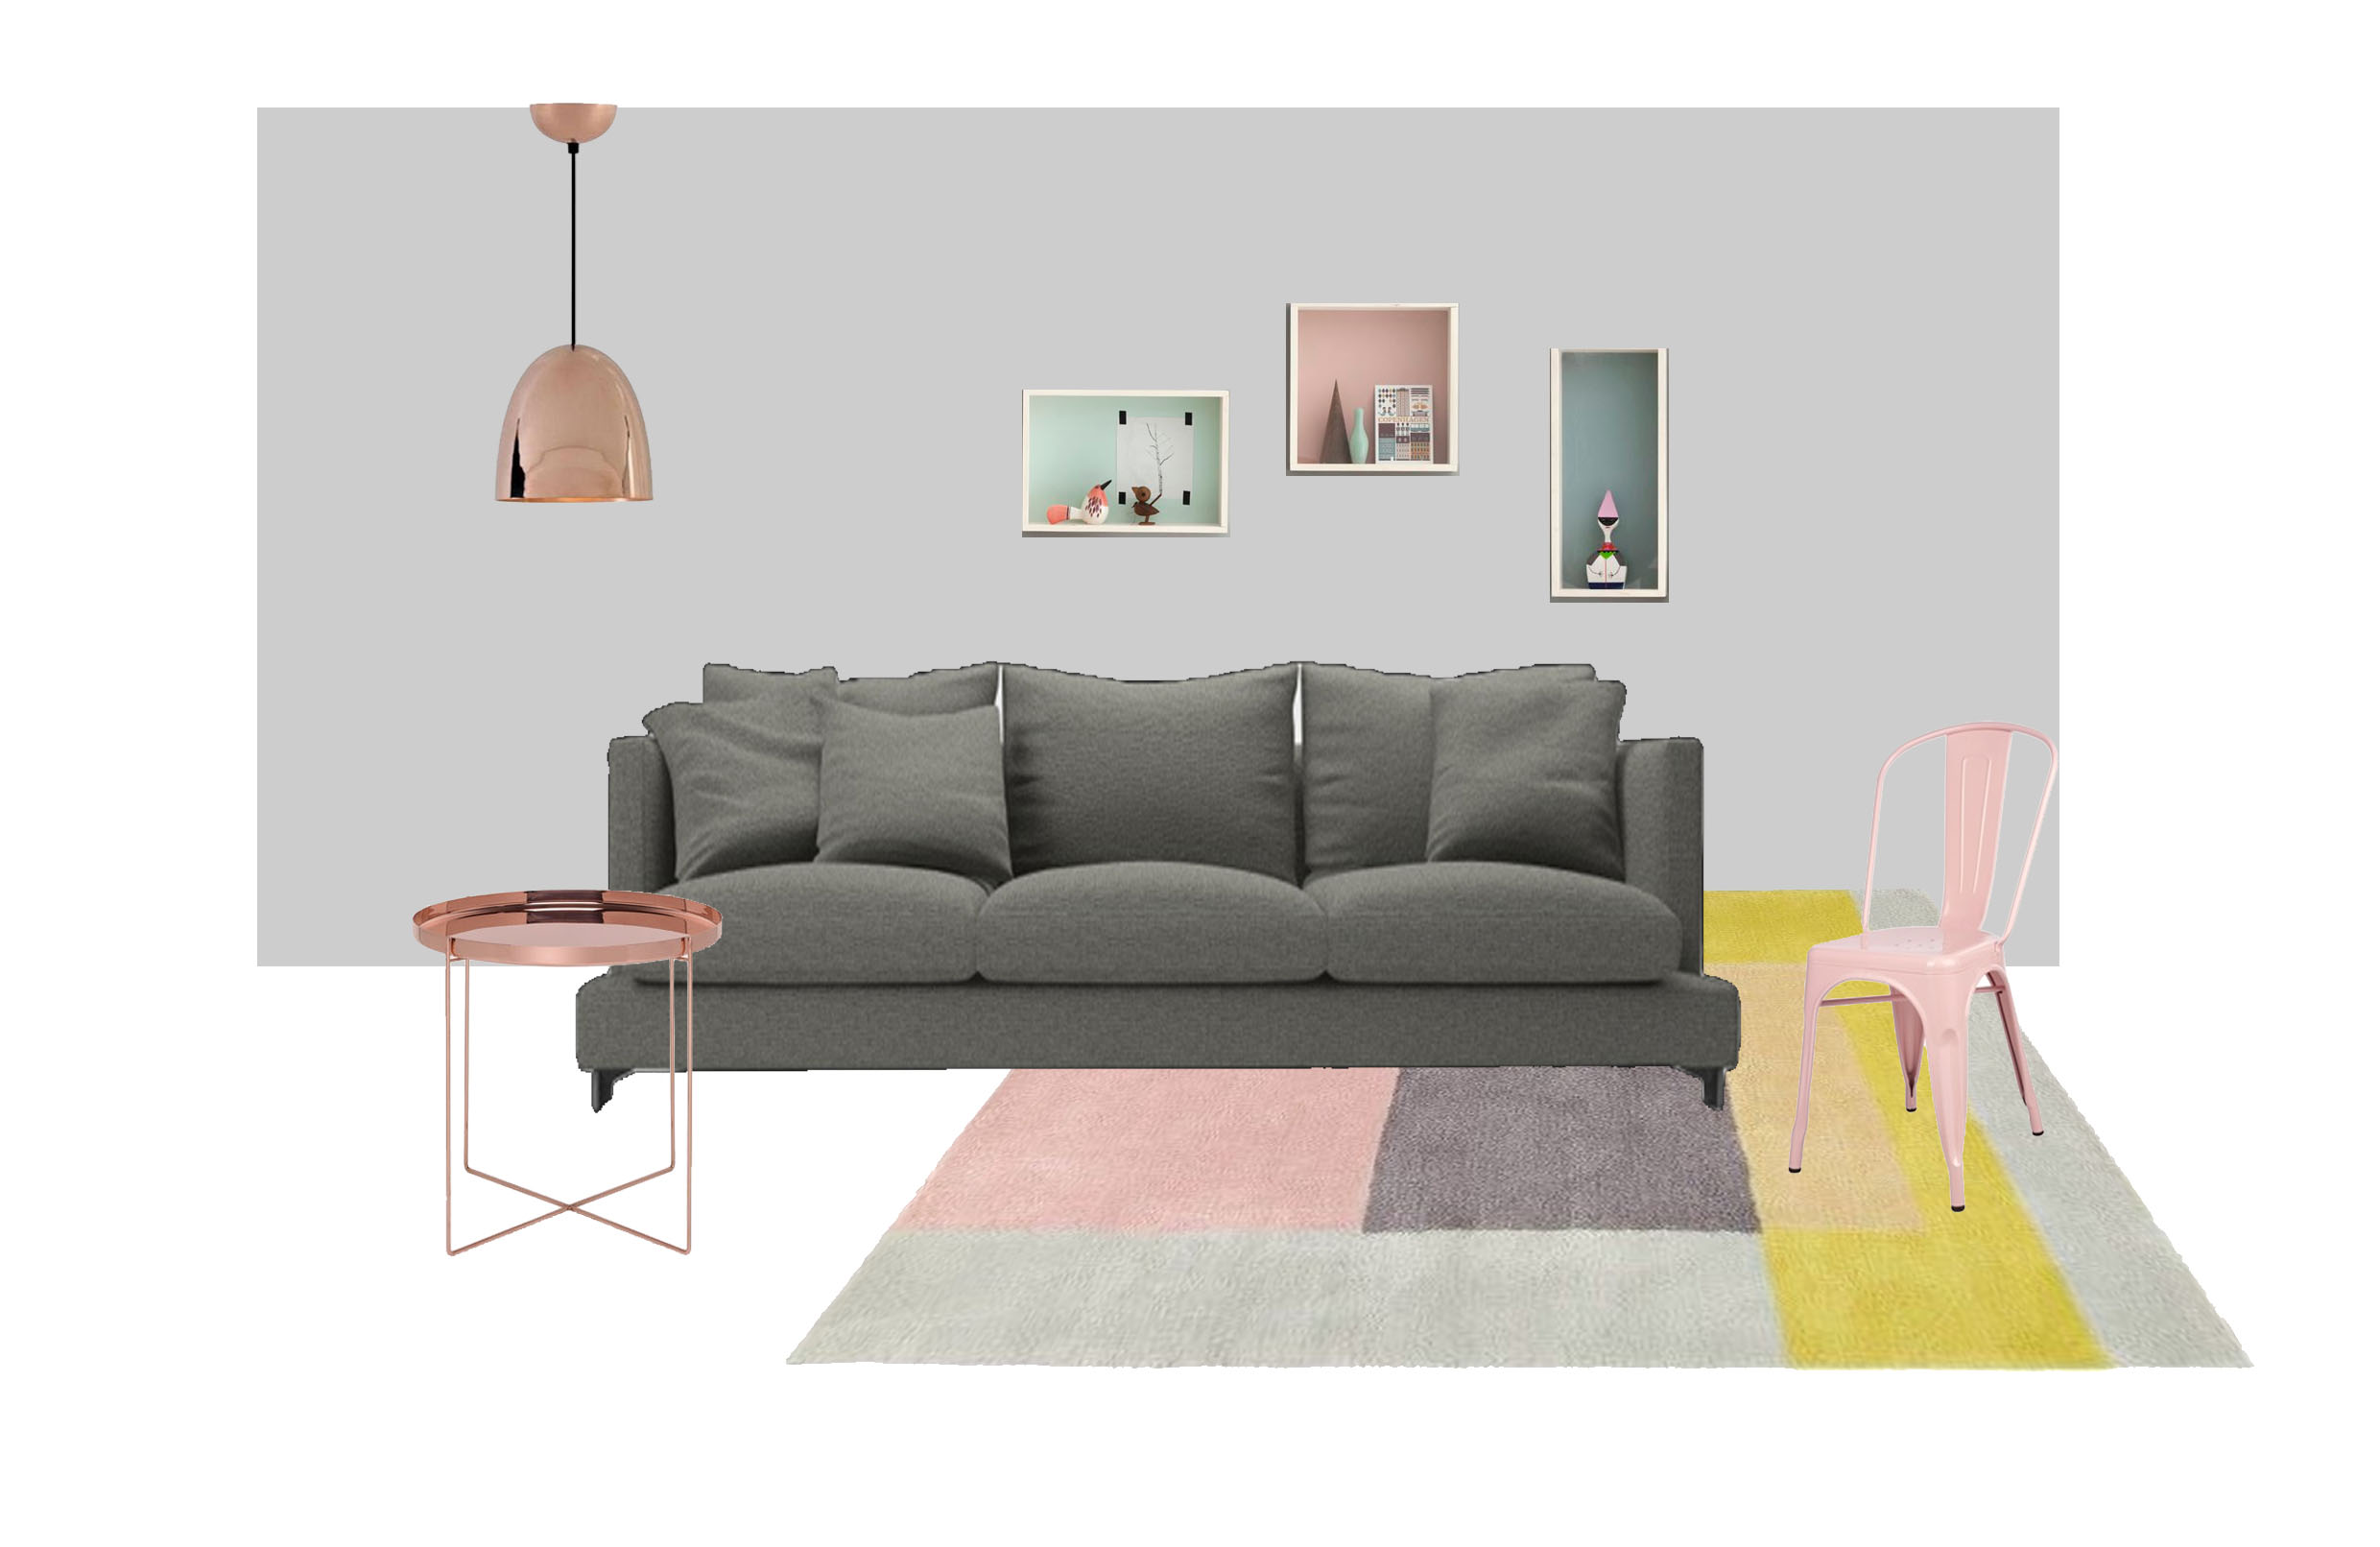 Lazytime plus sofa camerich - If You Re Not Fond Of White How About Going For Some Lighter Grey Walls With Pastels Rather Than Monotone Here You Ve Got A Bit More Freedom With Colours